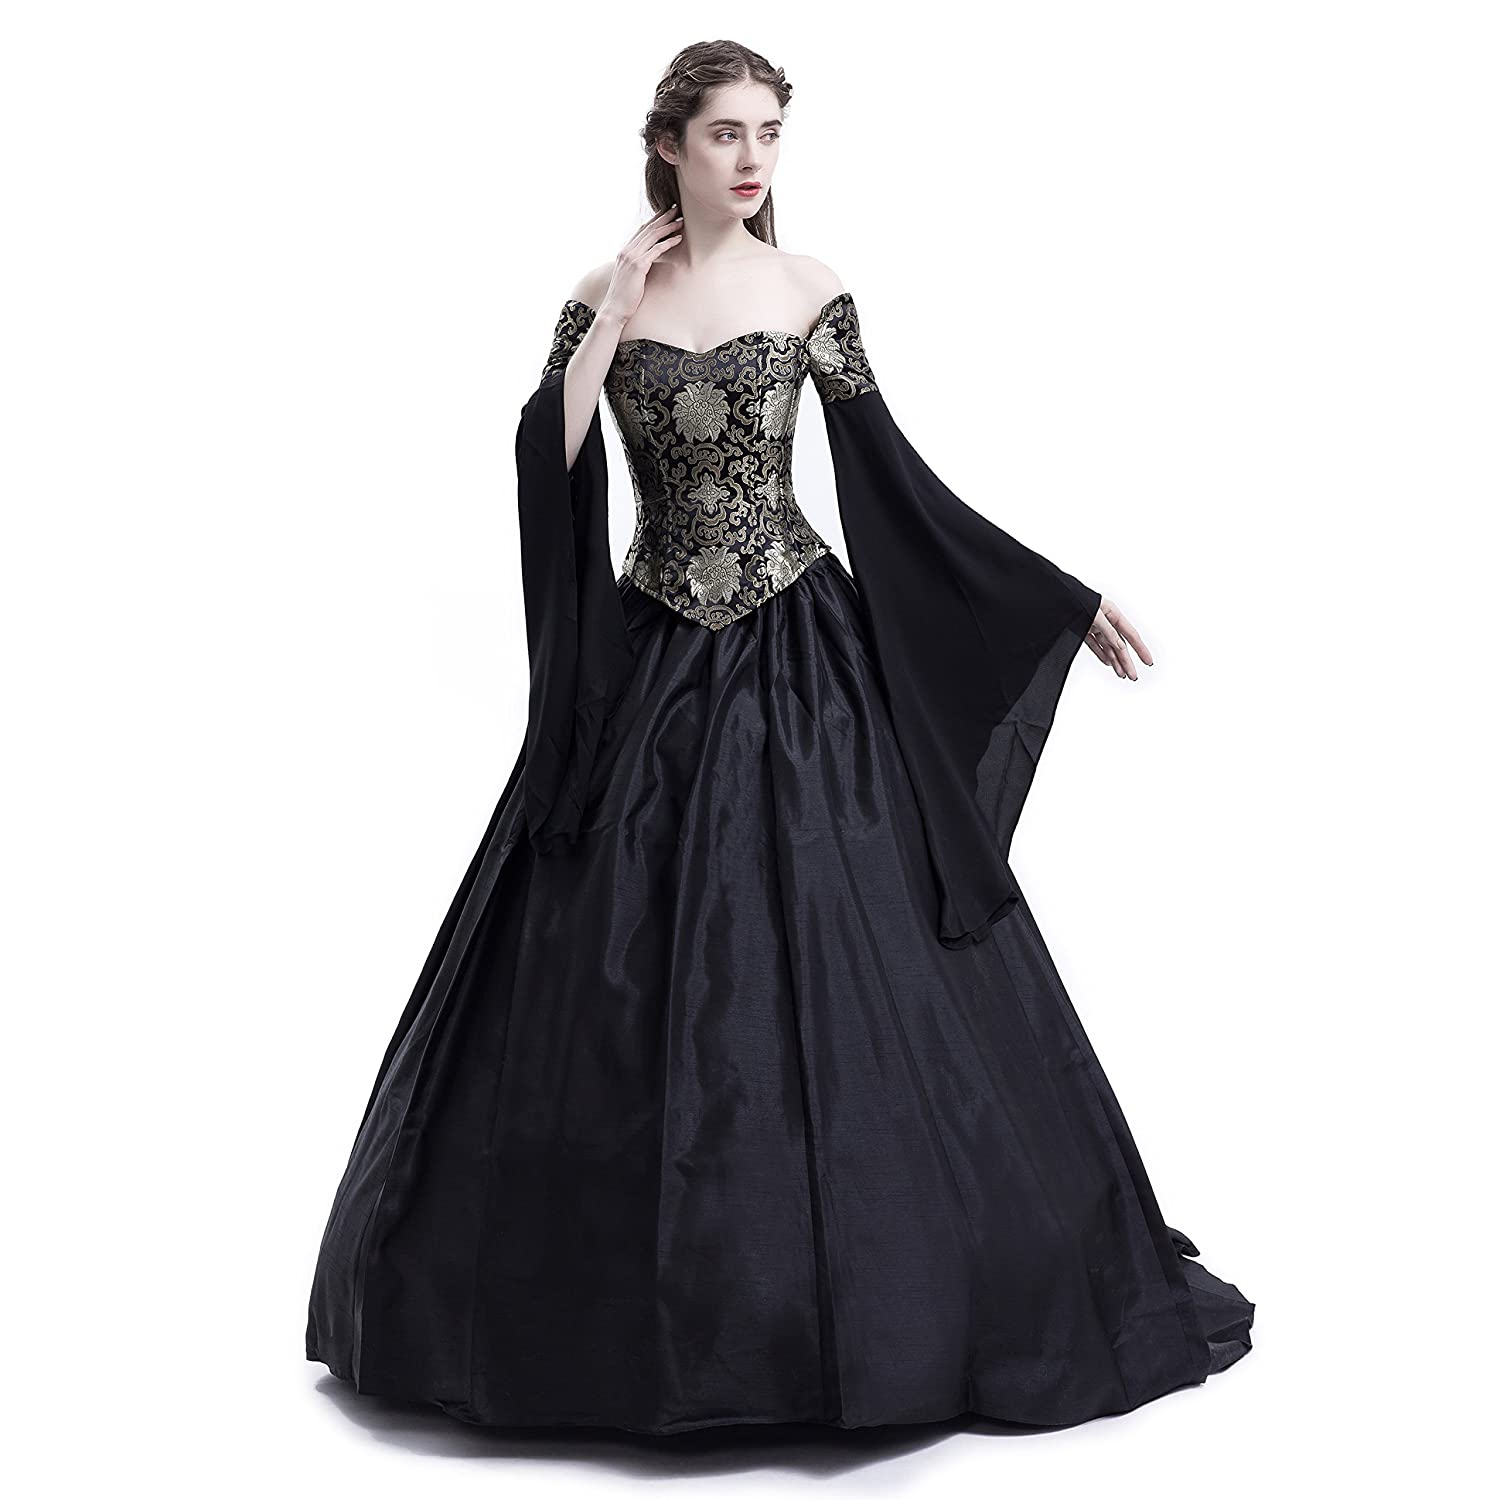 Renaissance Wedding Dress.D Roseblooming Black Vintage Renaissance Wedding Dress Gothic